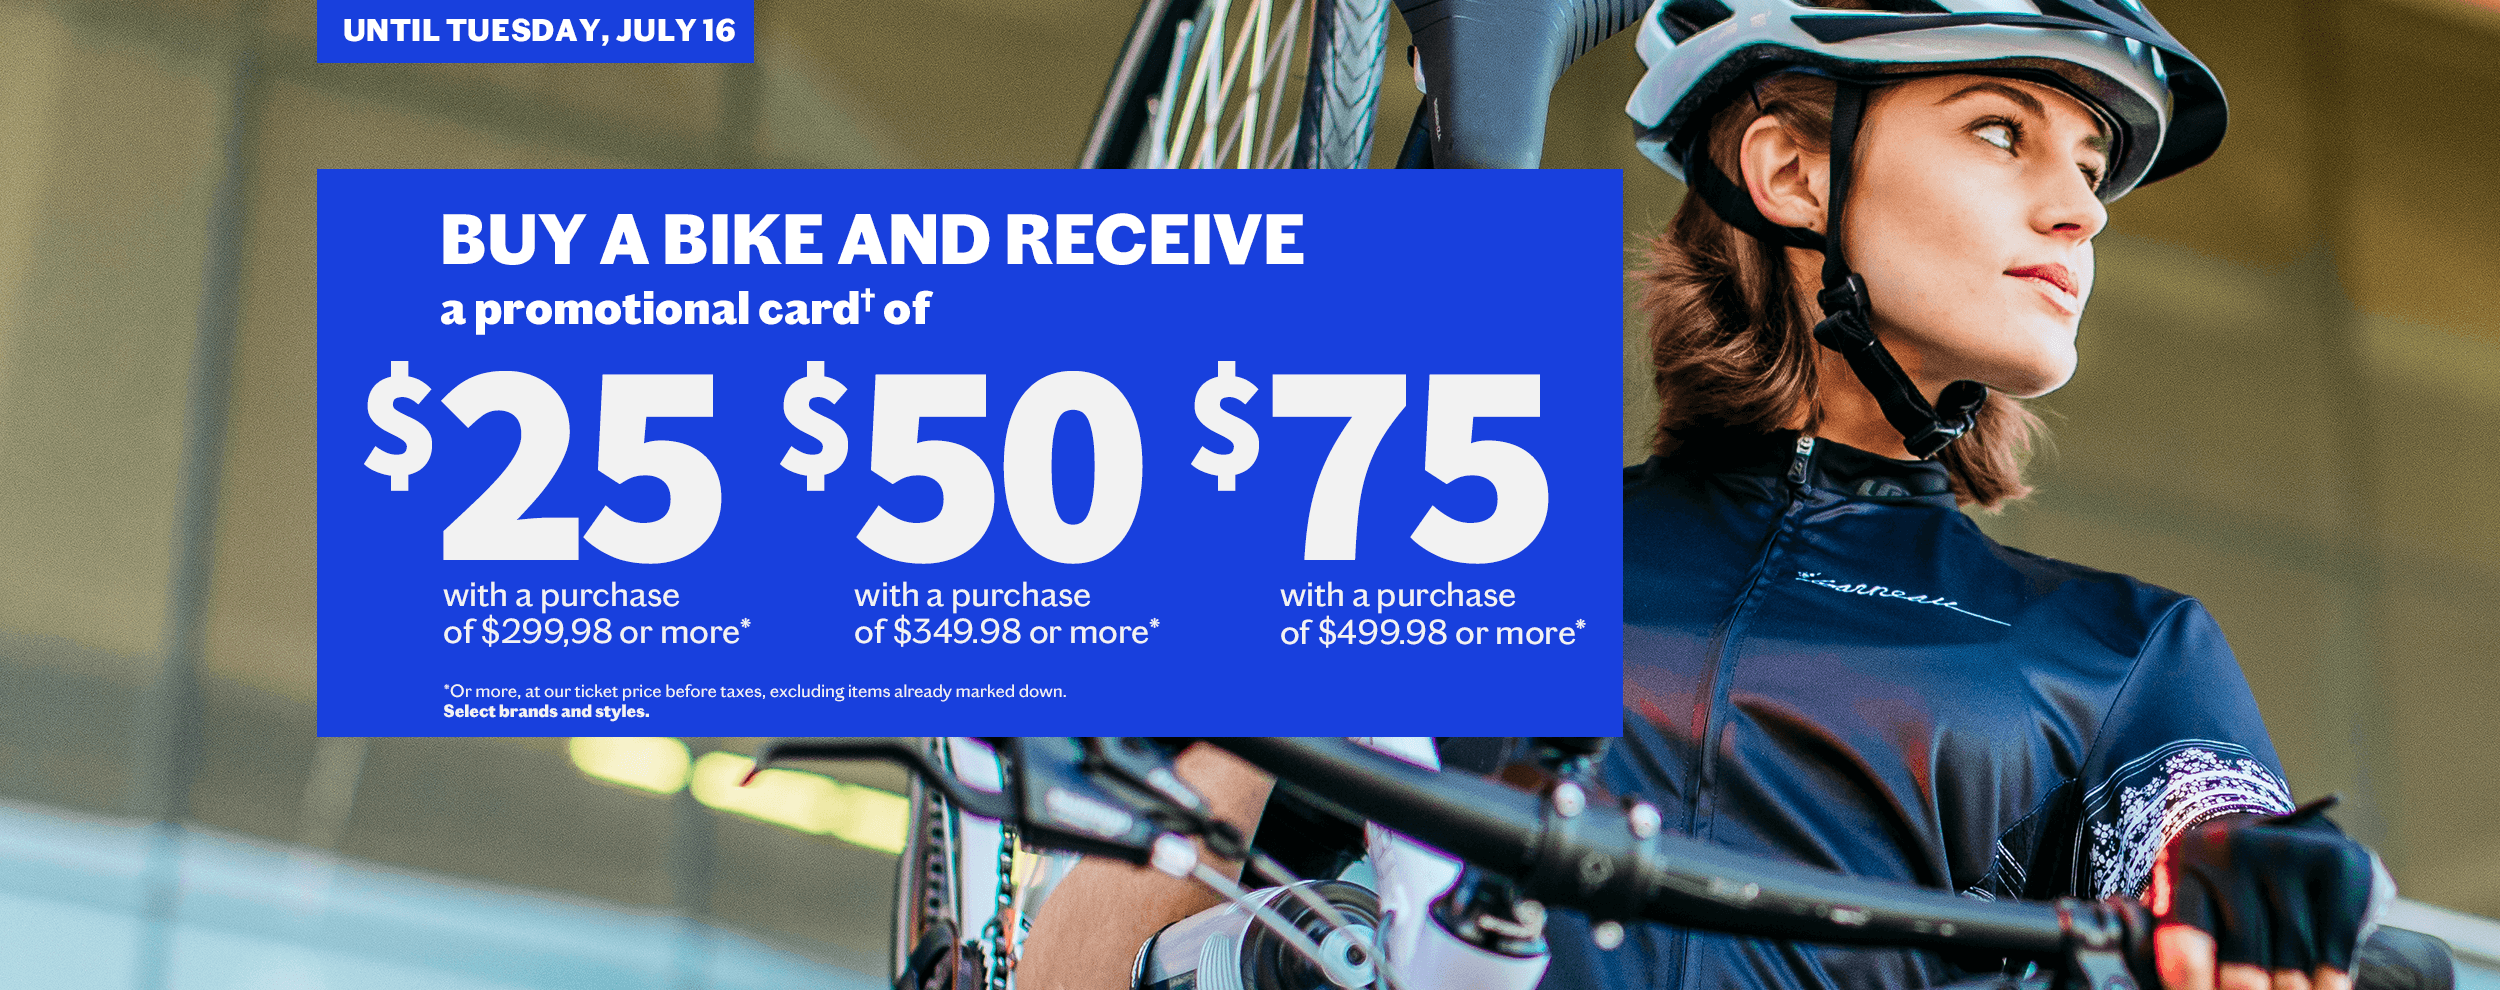 bike promo April 3 to July 16 2019